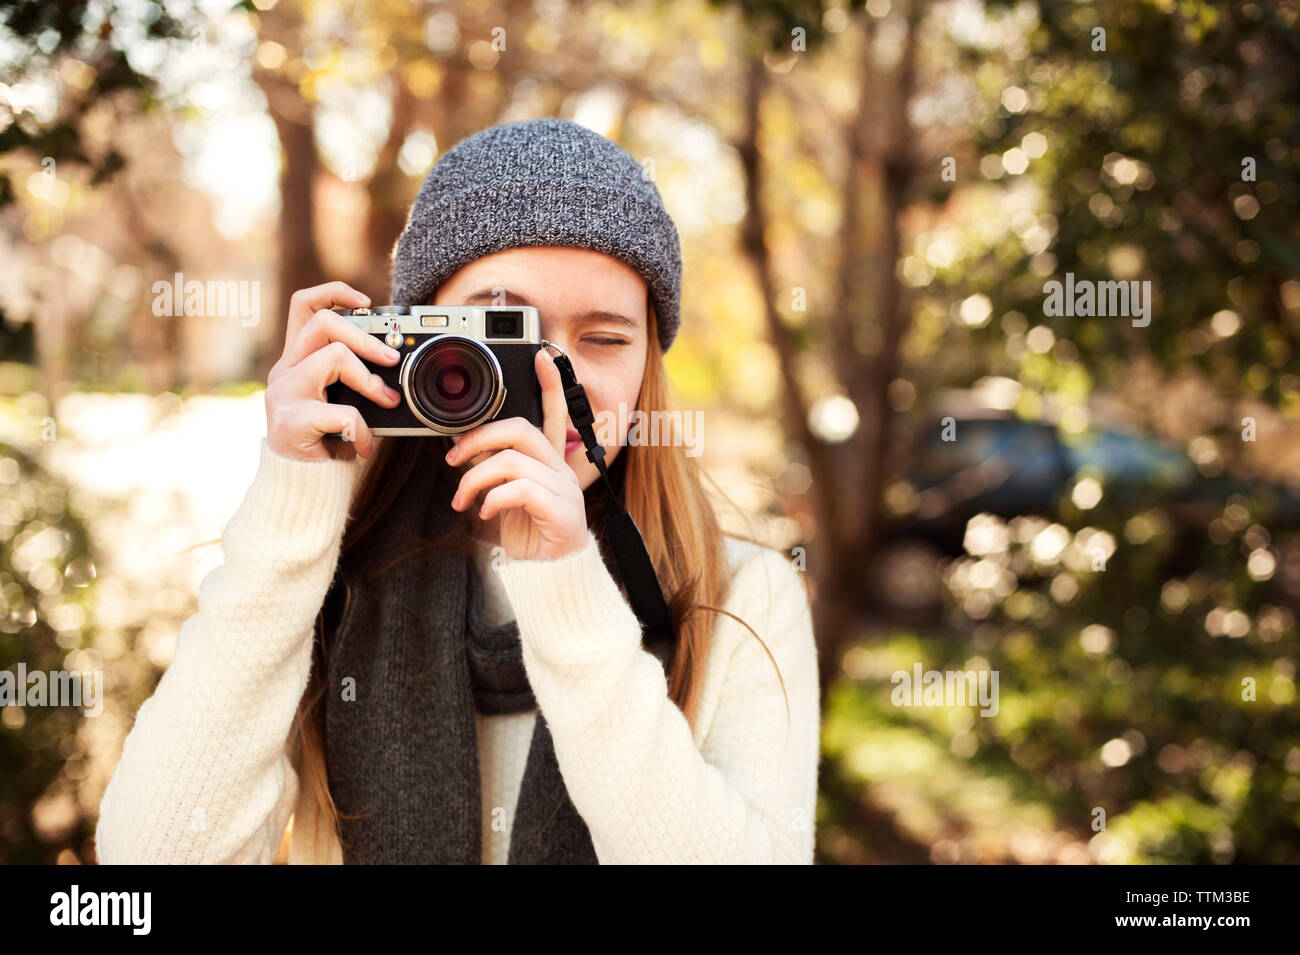 Girl photographing with camera against trees - Stock Image